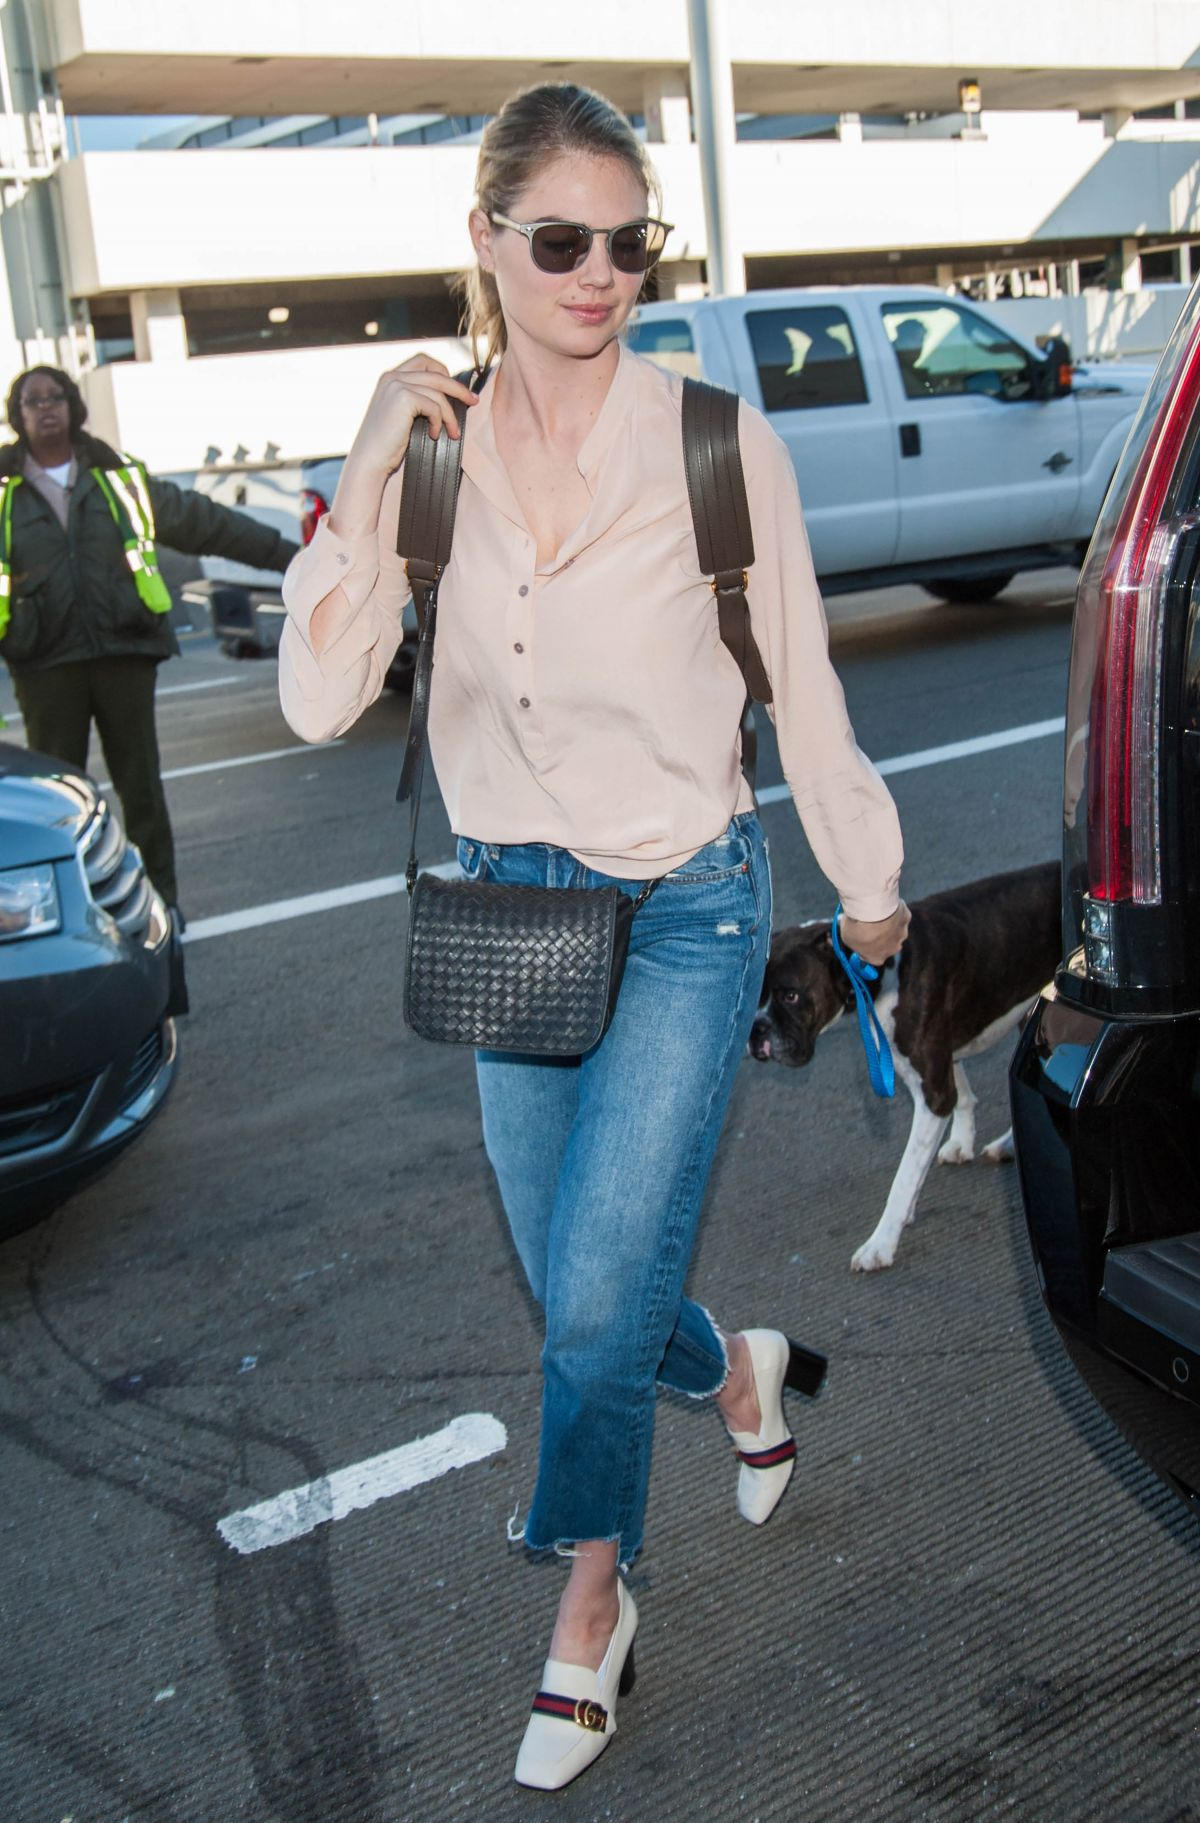 KATE UPTON at LAX Airport in Los Angeles 12/29/2016